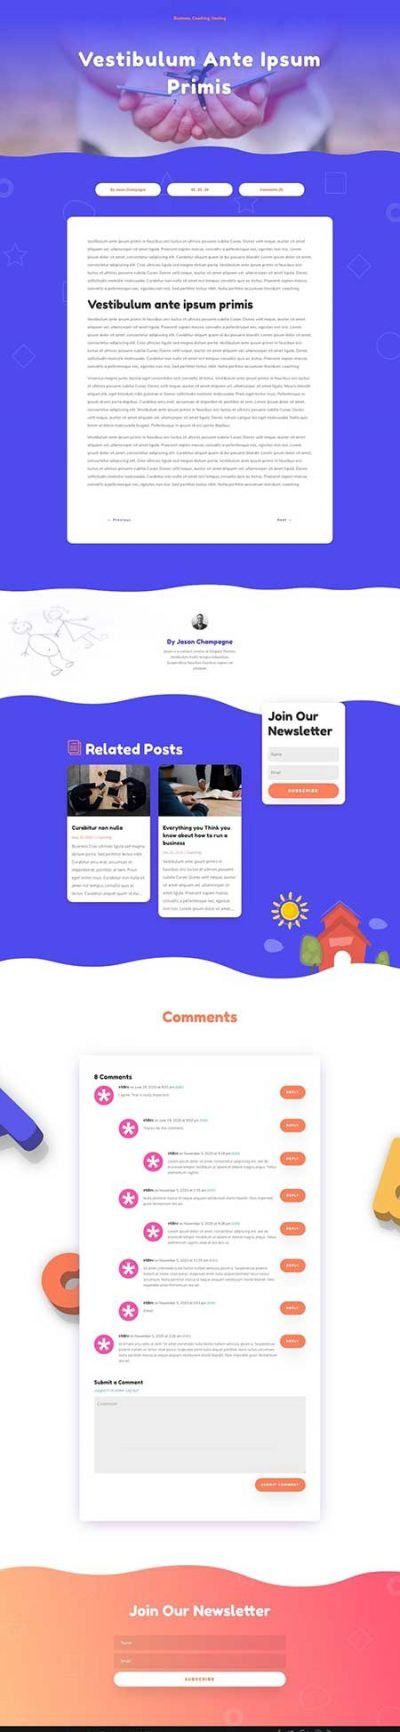 Divi daycare blog post